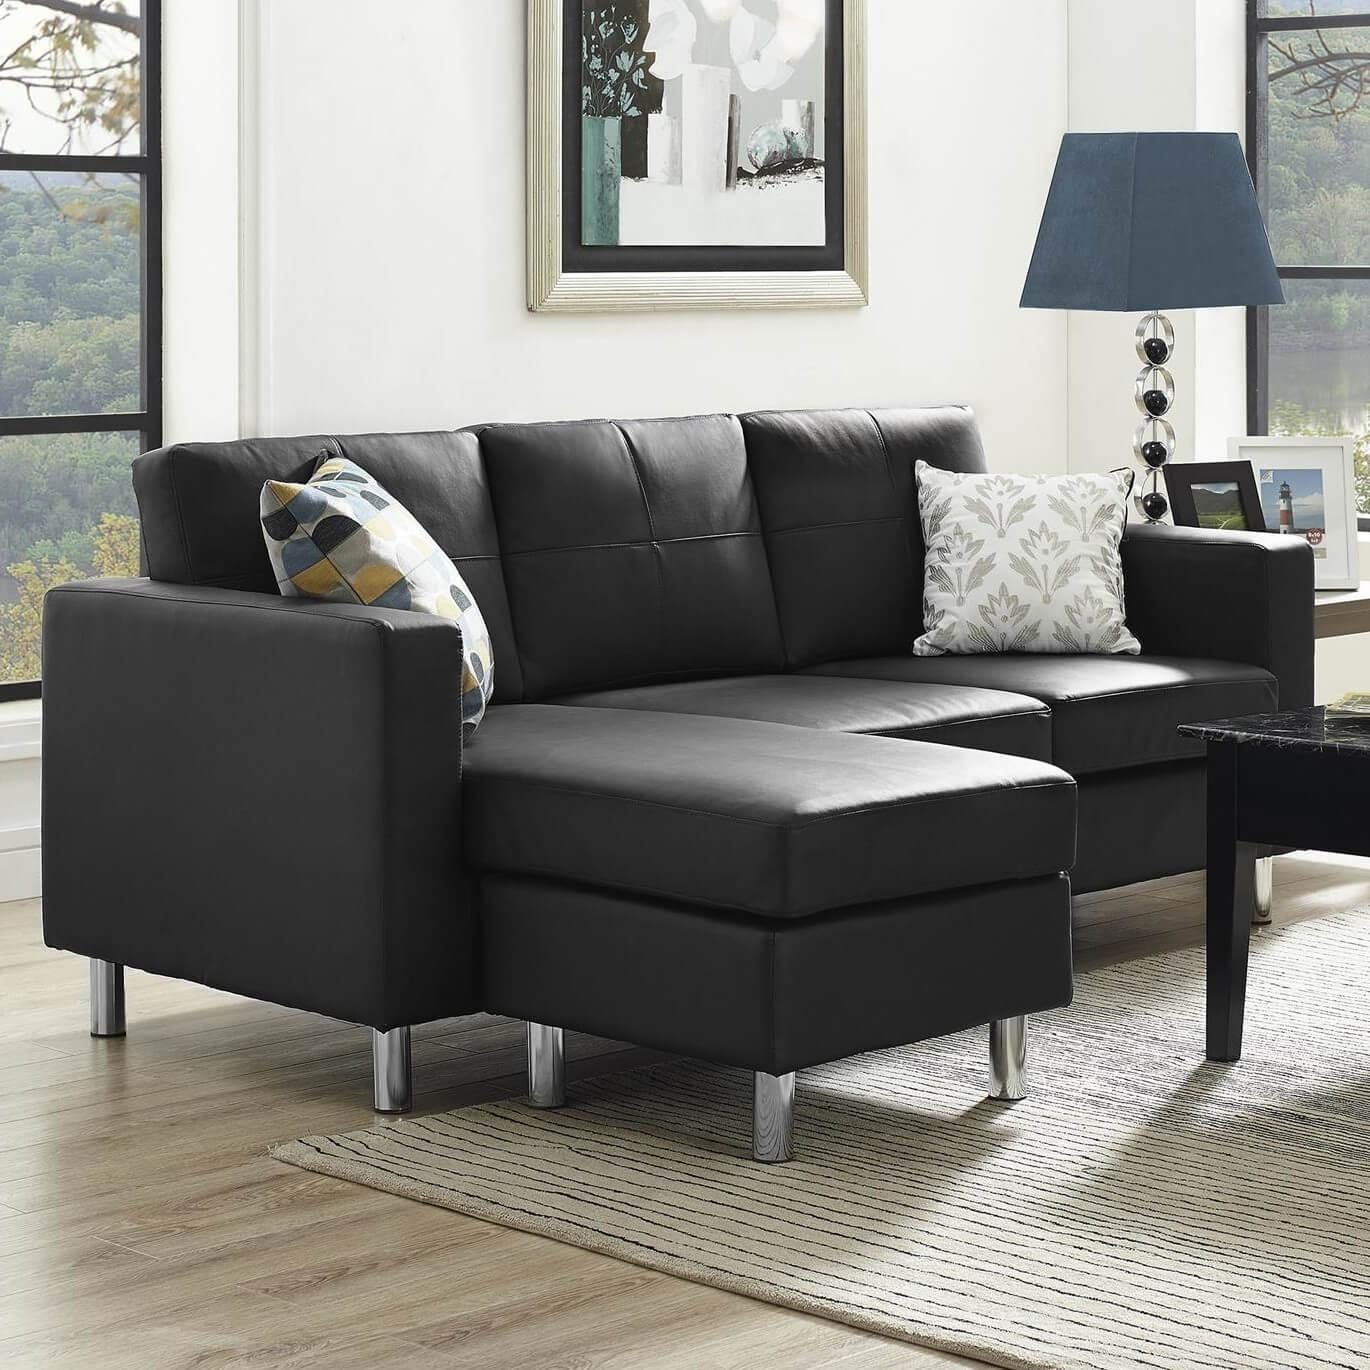 13 Sectional Sofas Under $500 (Several Styles) | Home Stratosphere for Black Microfiber Sectional Sofas